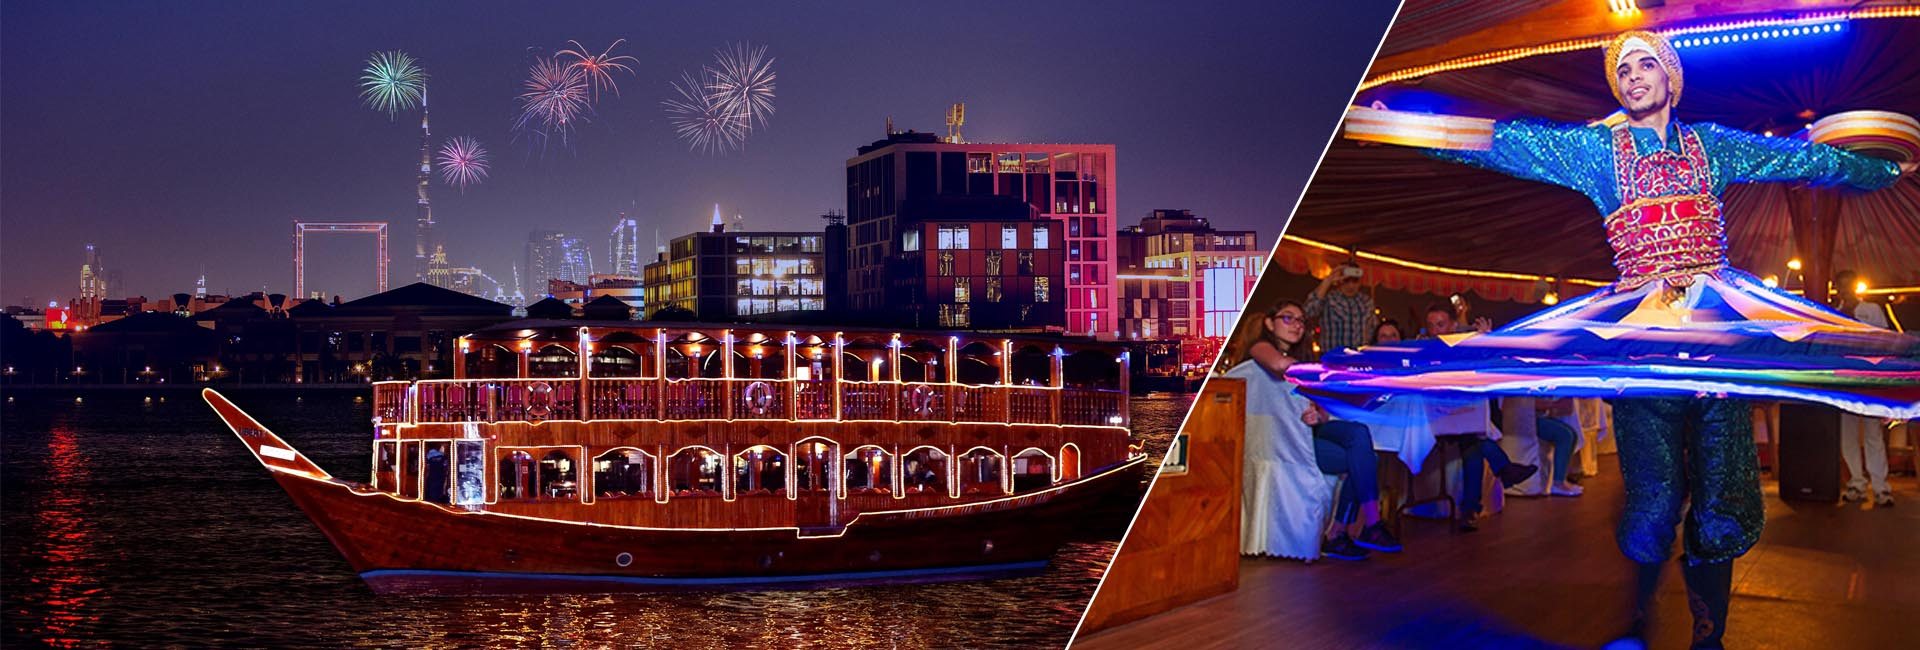 Dubai New Year's Eve 2021 Cruise | Boat Party New Years Eve Dubai